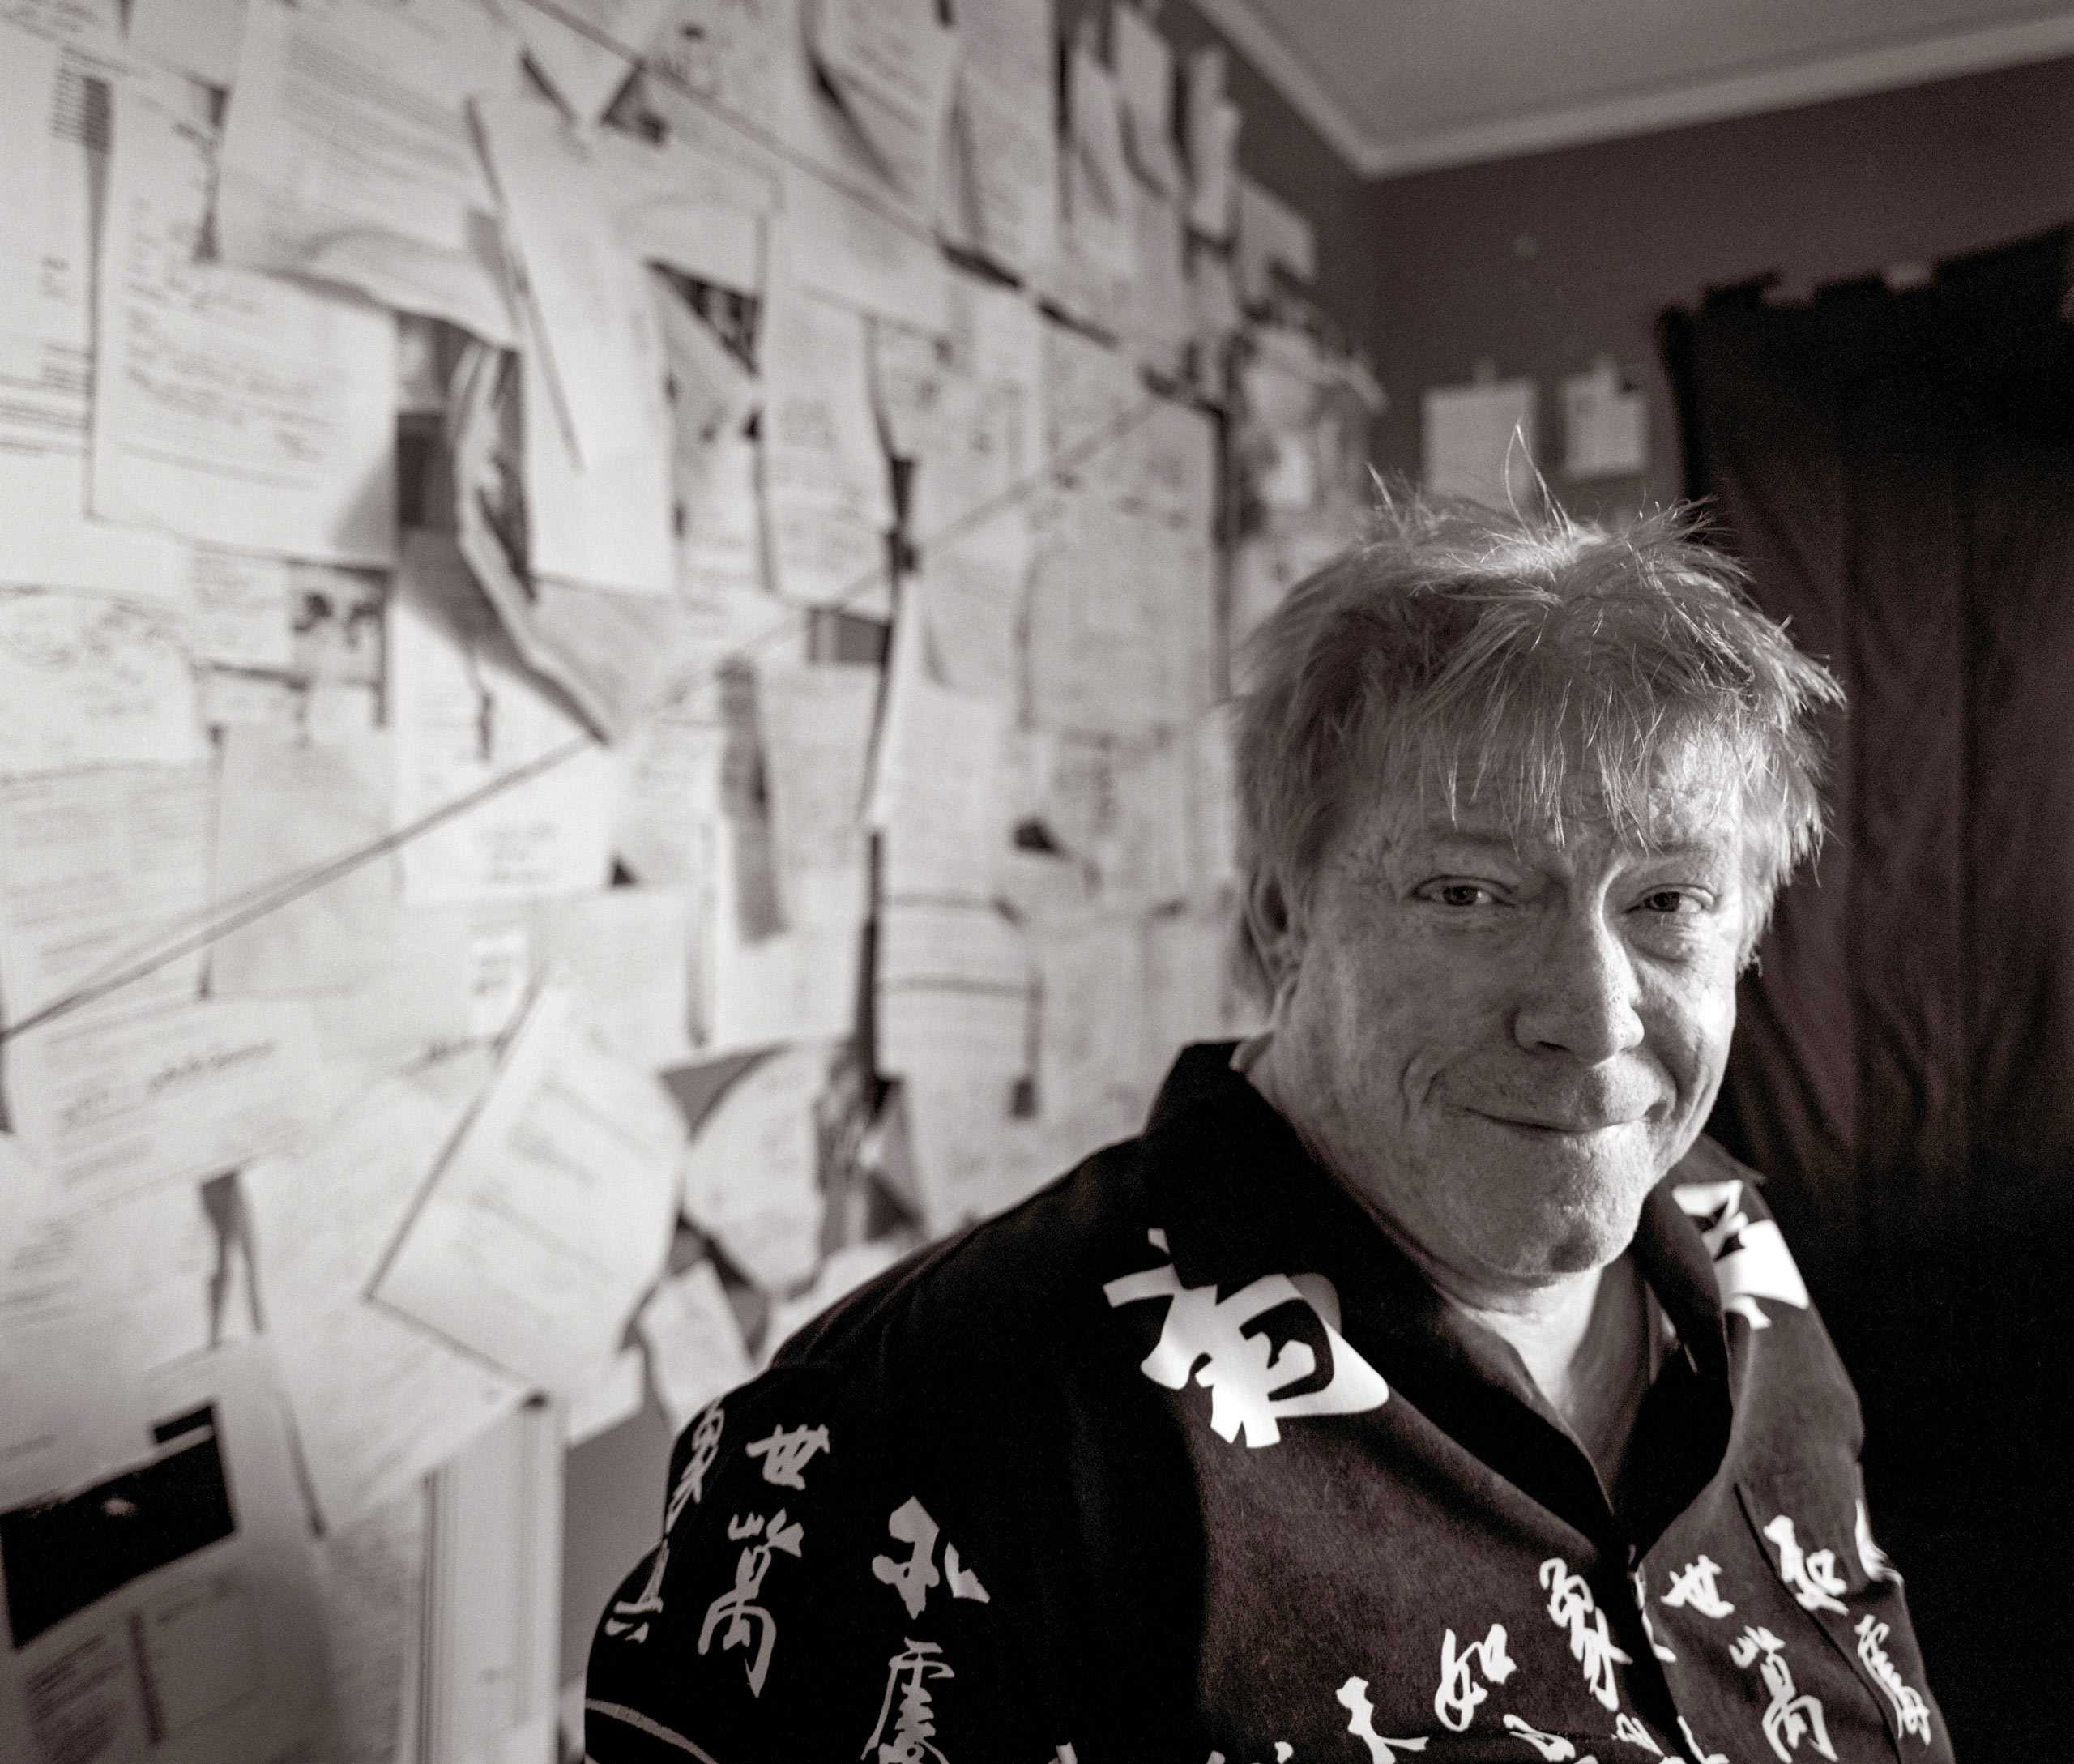 """Cartoonist John Callahan photographed in his studio for the """"Artist Within""""."""